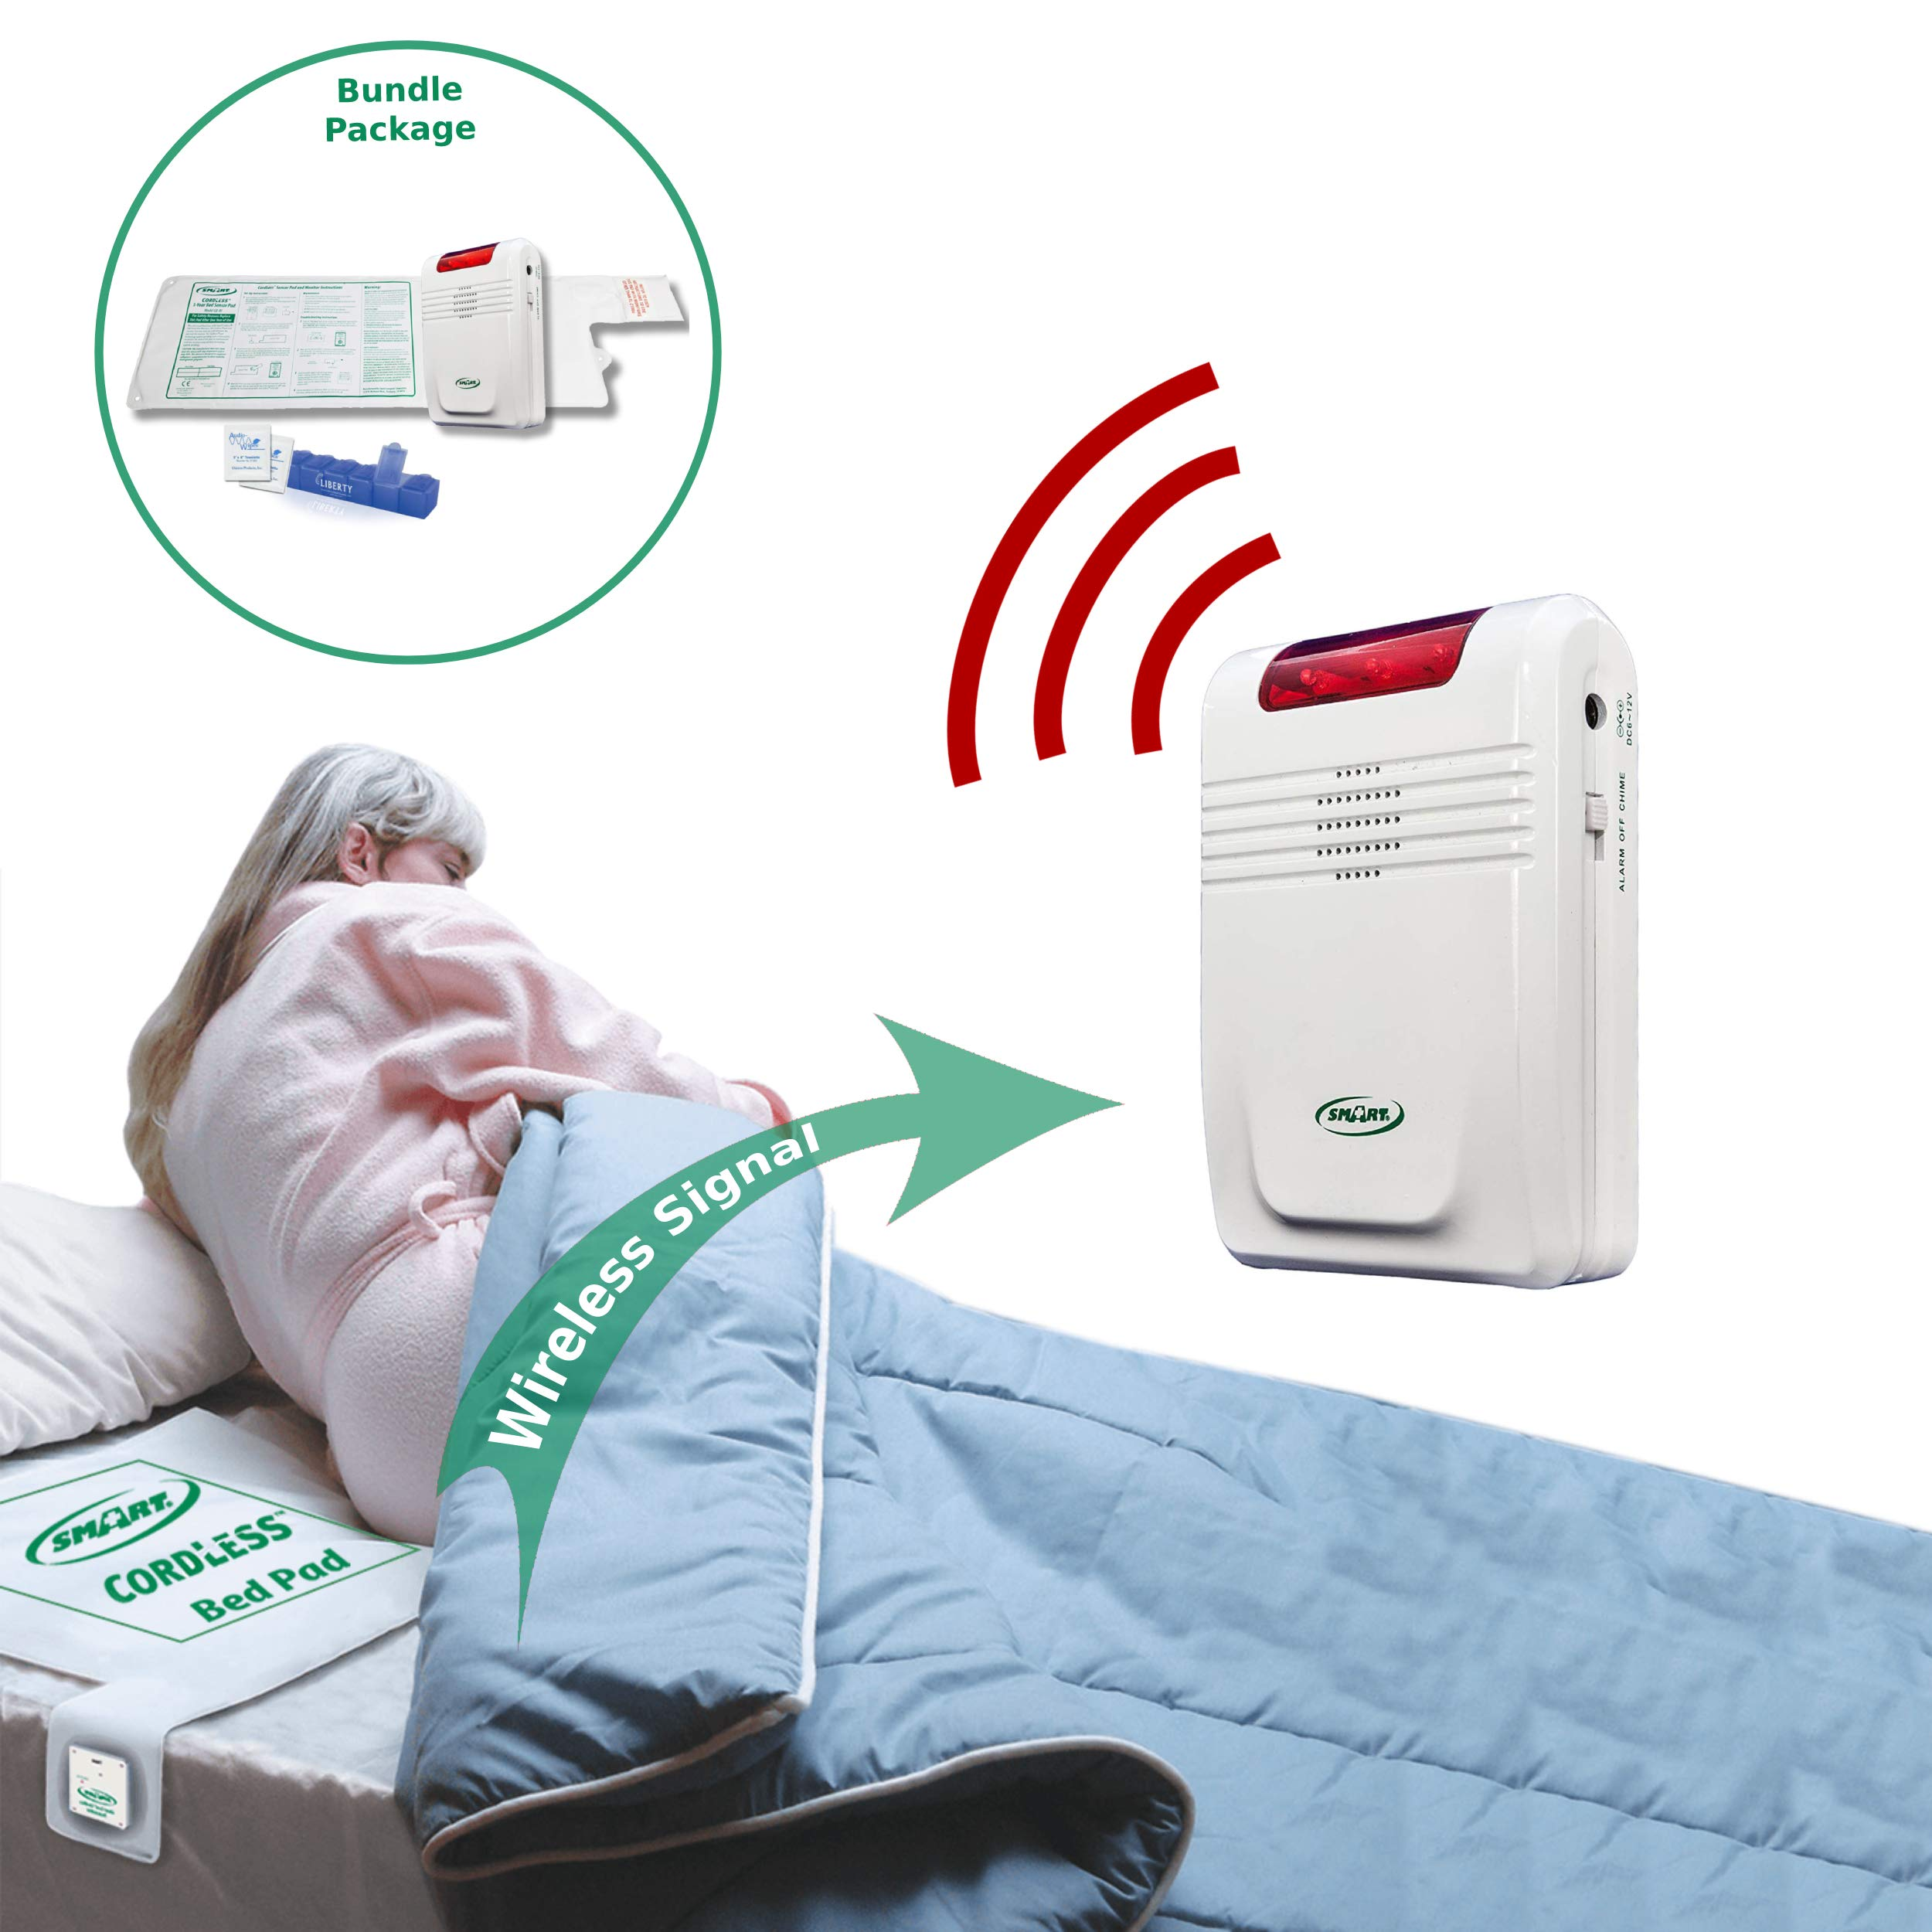 Smart Caregiver Wireless Bed Alarm System - Cordless Weight Sensing Bed Alarm Pad (10'' x 30'') with Remote Alert Monitor, 20 Individual Cleaning Wipes and Liberty 7 Day Pill Box by Smart Caregiver Corporation